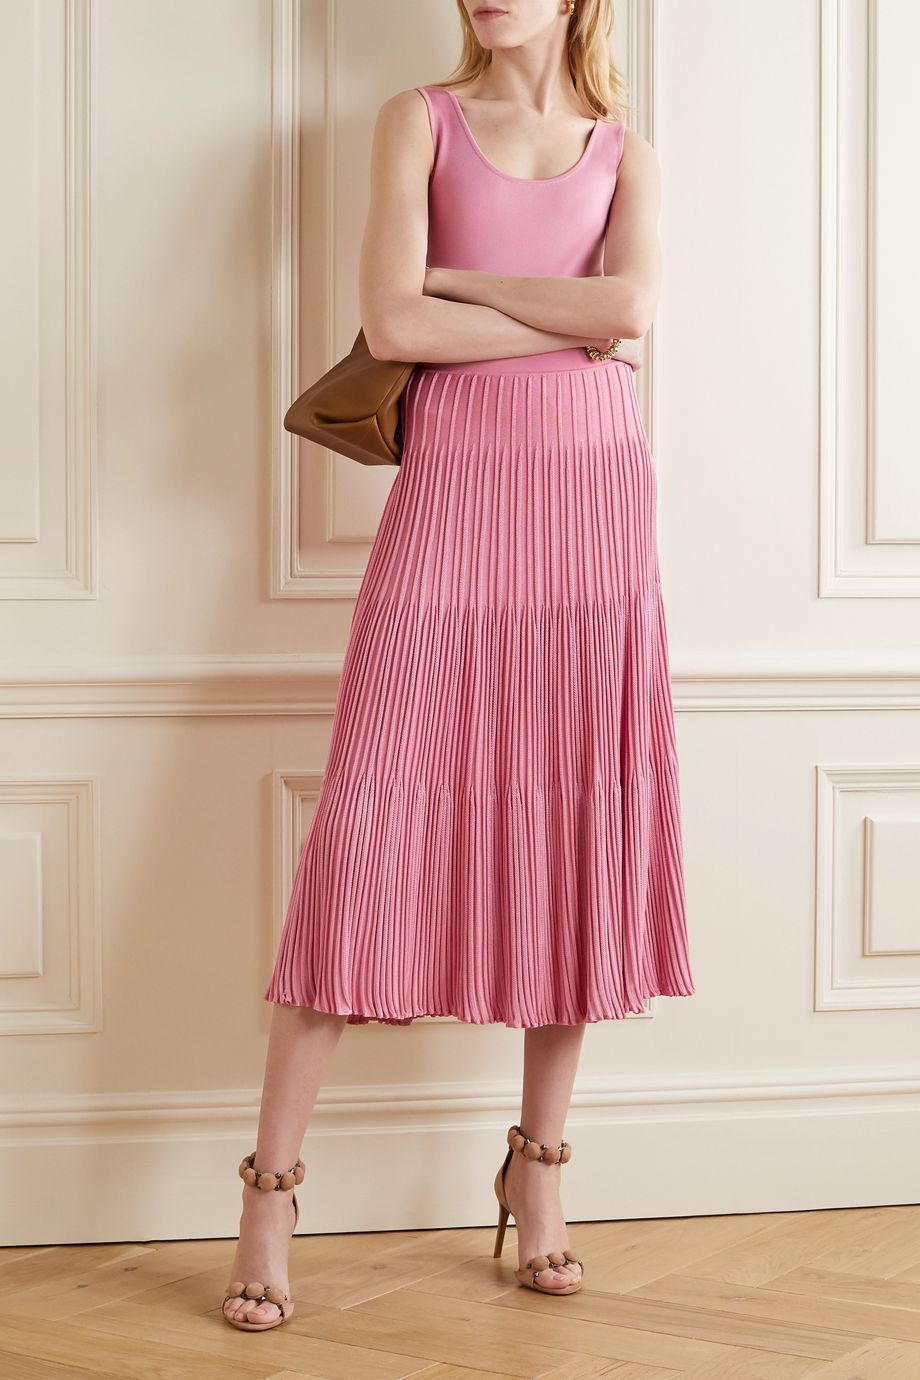 CASASOLA + NET SUSTAIN ribbed-knit midi skirt